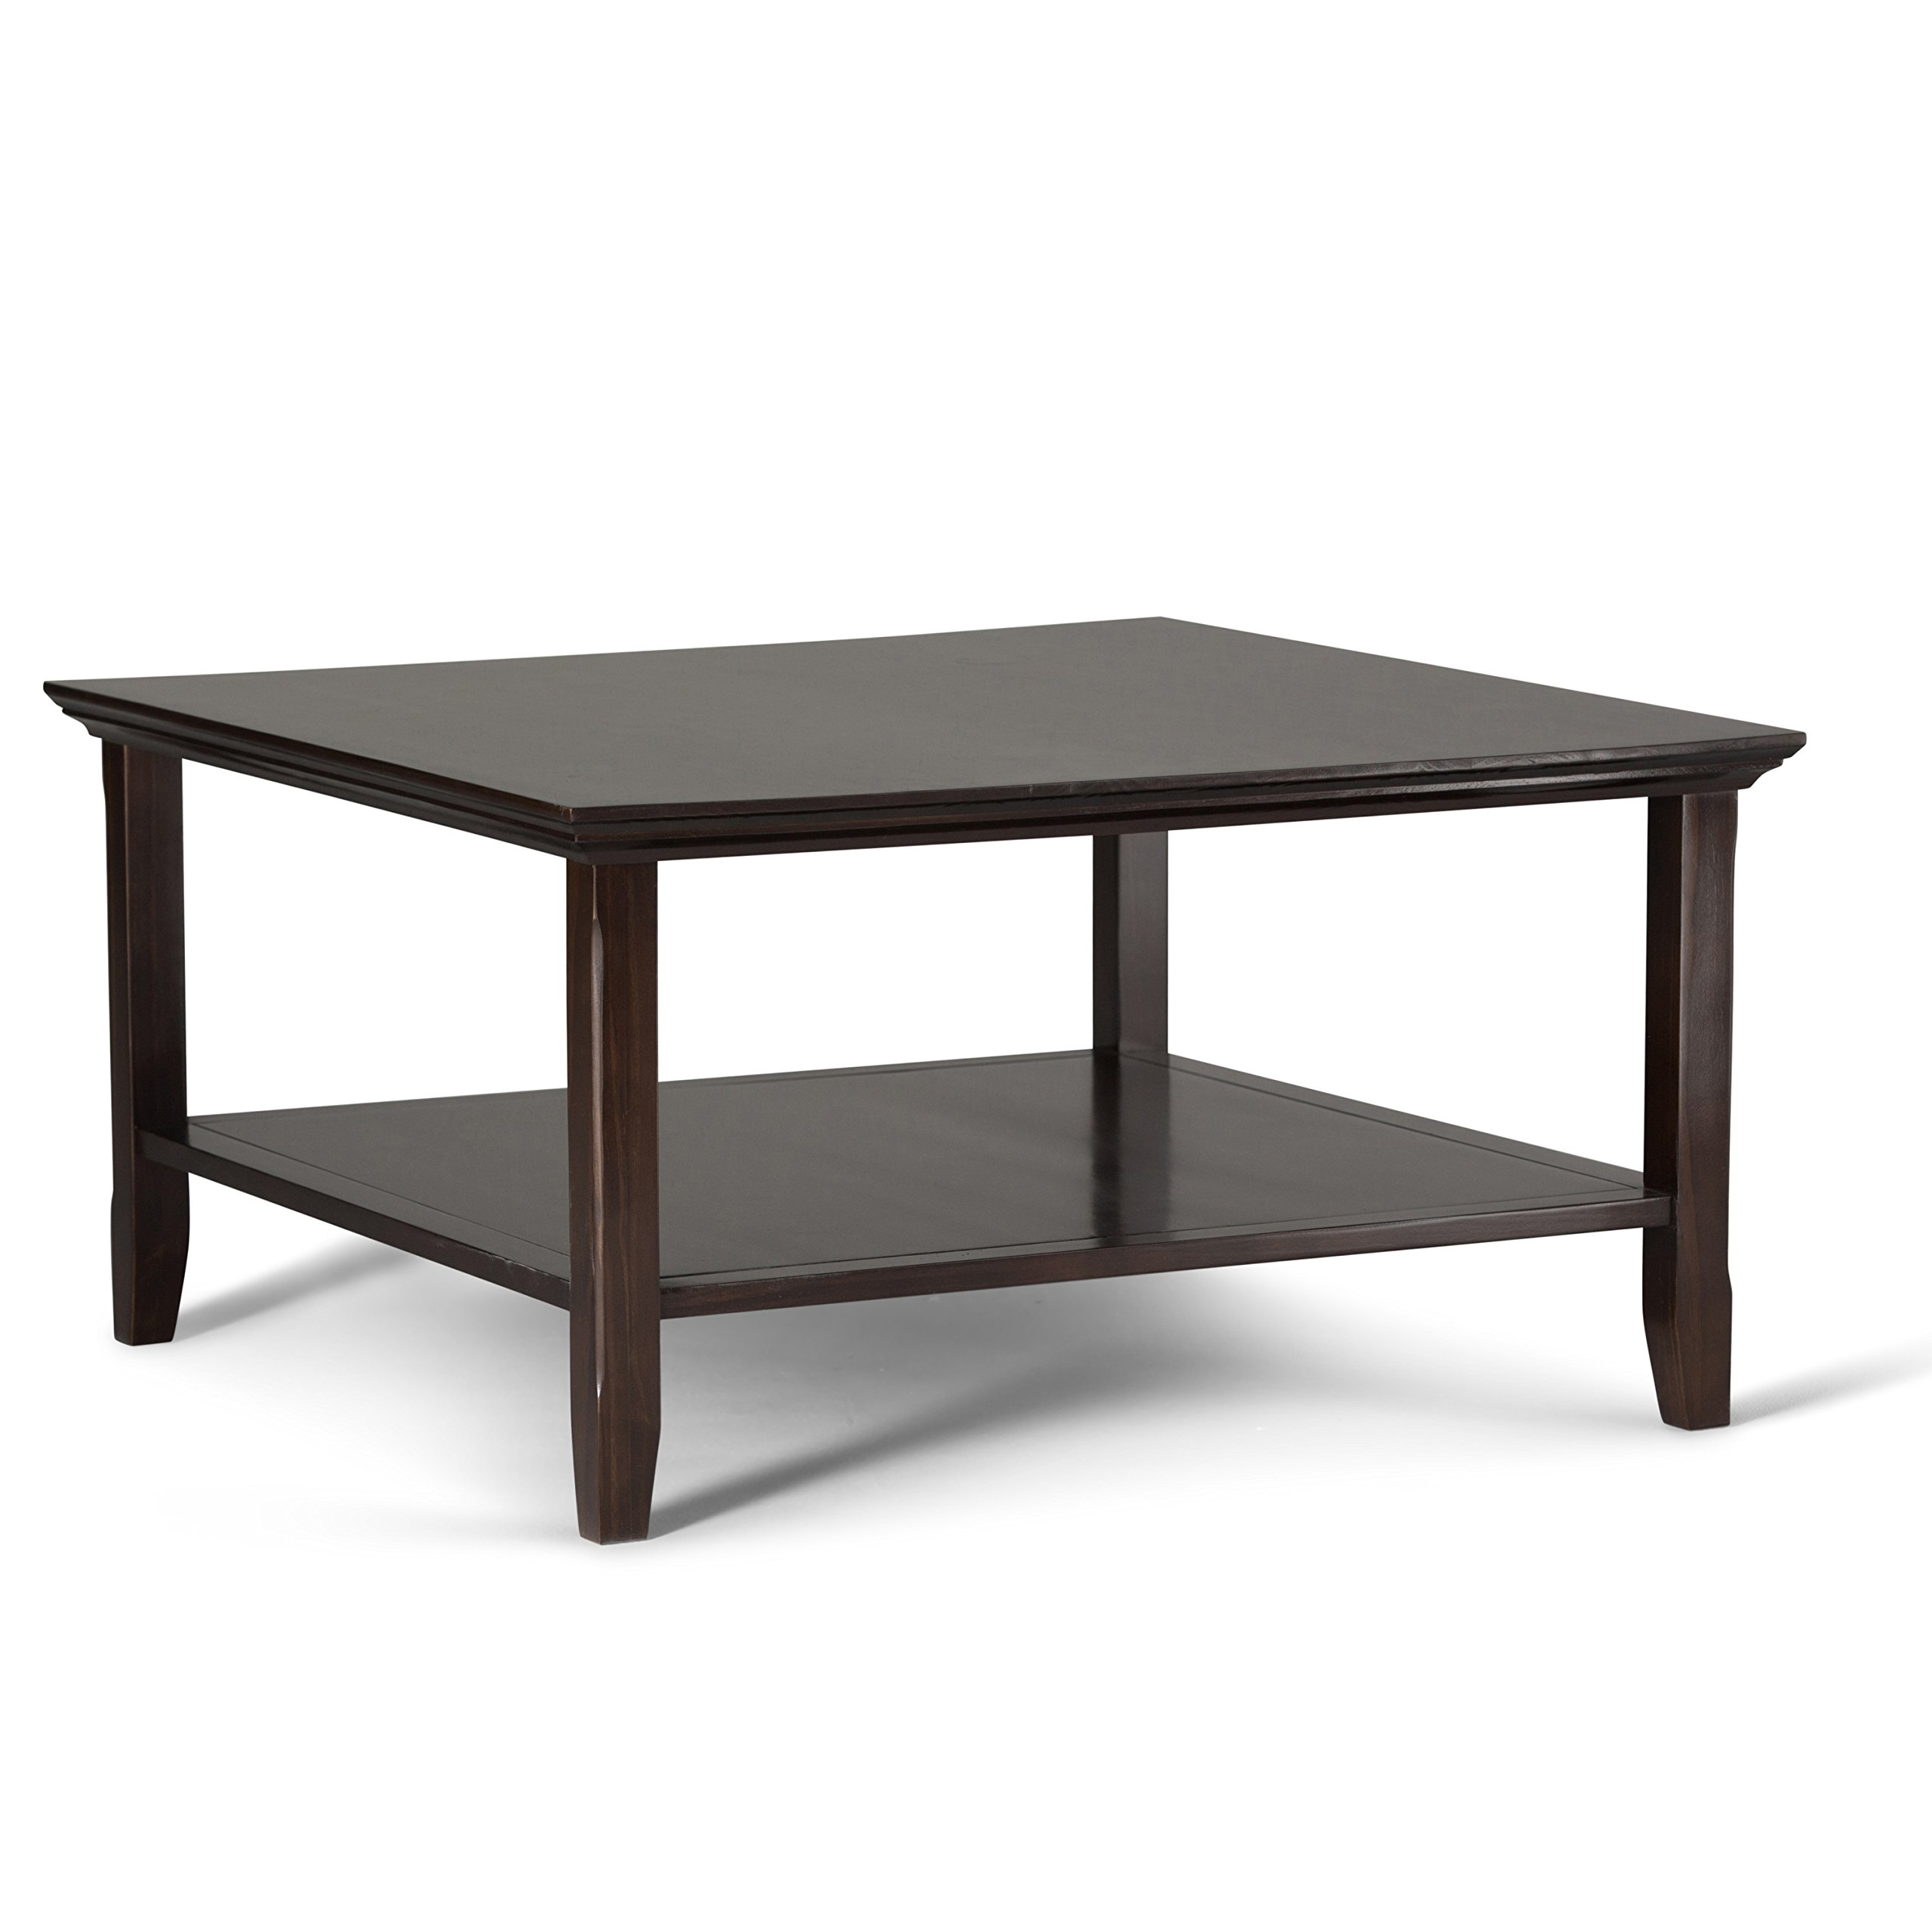 Simpli Home Acadian Square Coffee Table, Tobacco Brown